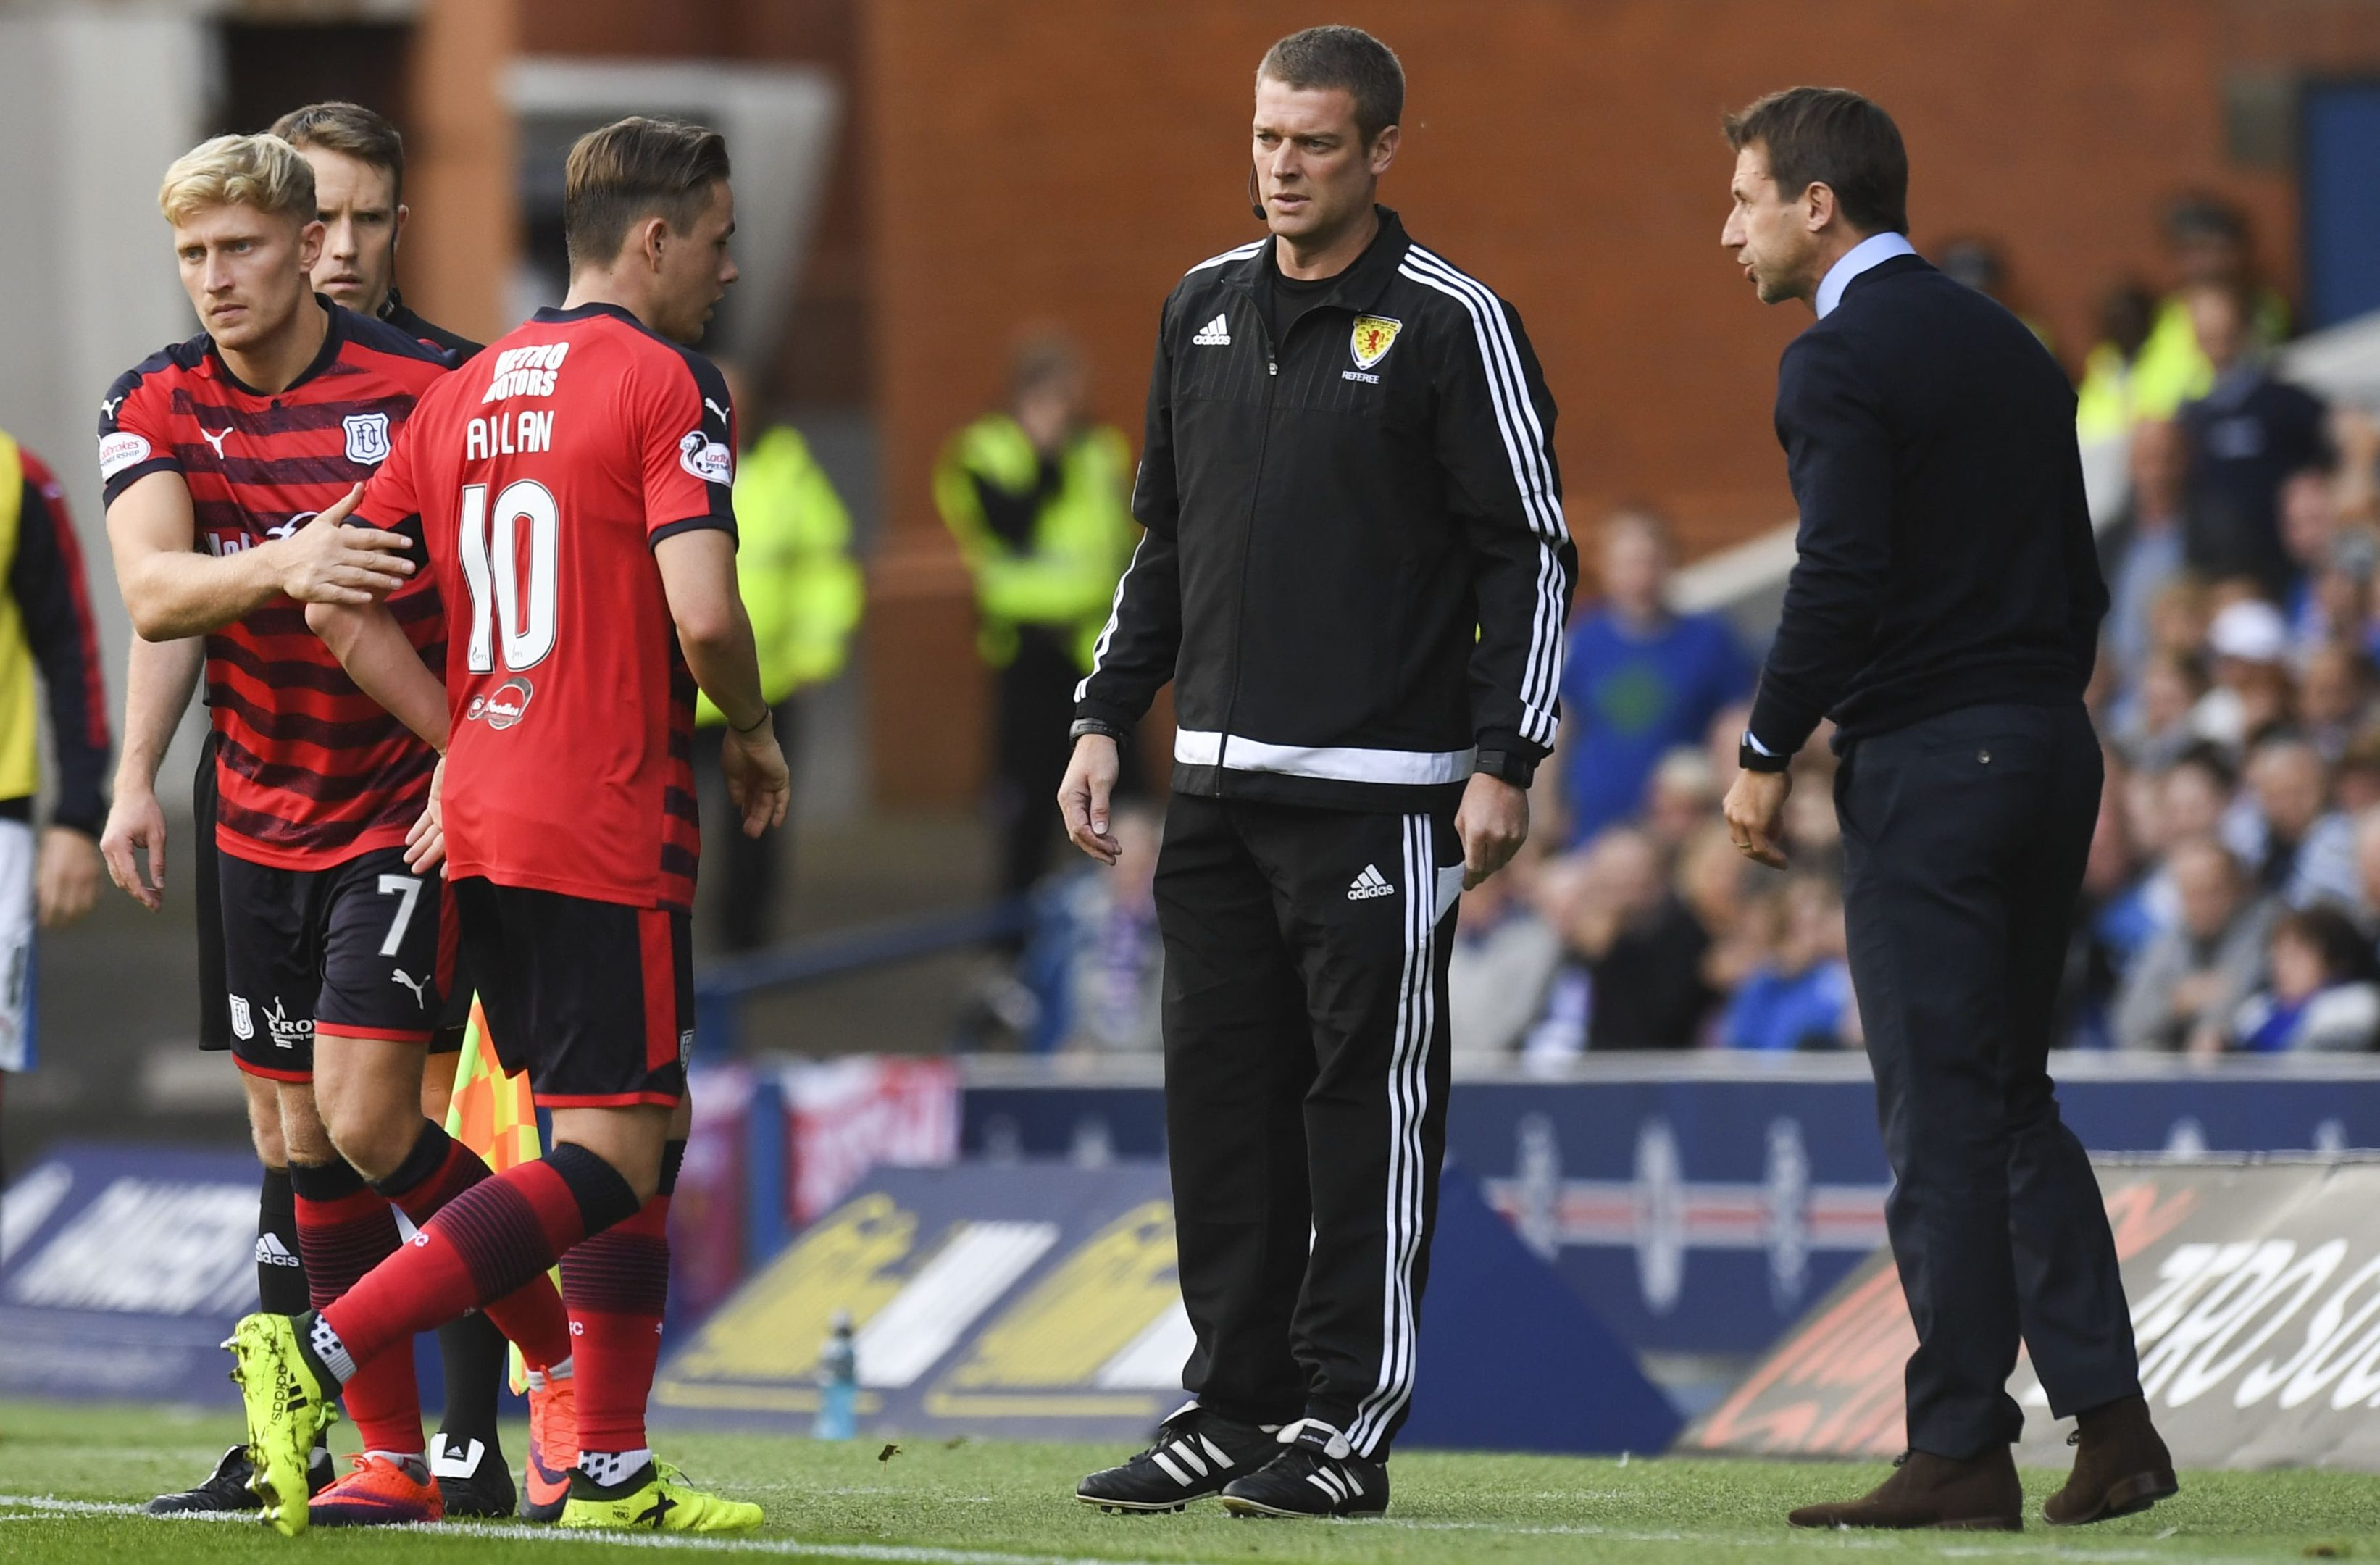 Dundee manager Neil McCann (right) with Scott Allan as he is substituted.